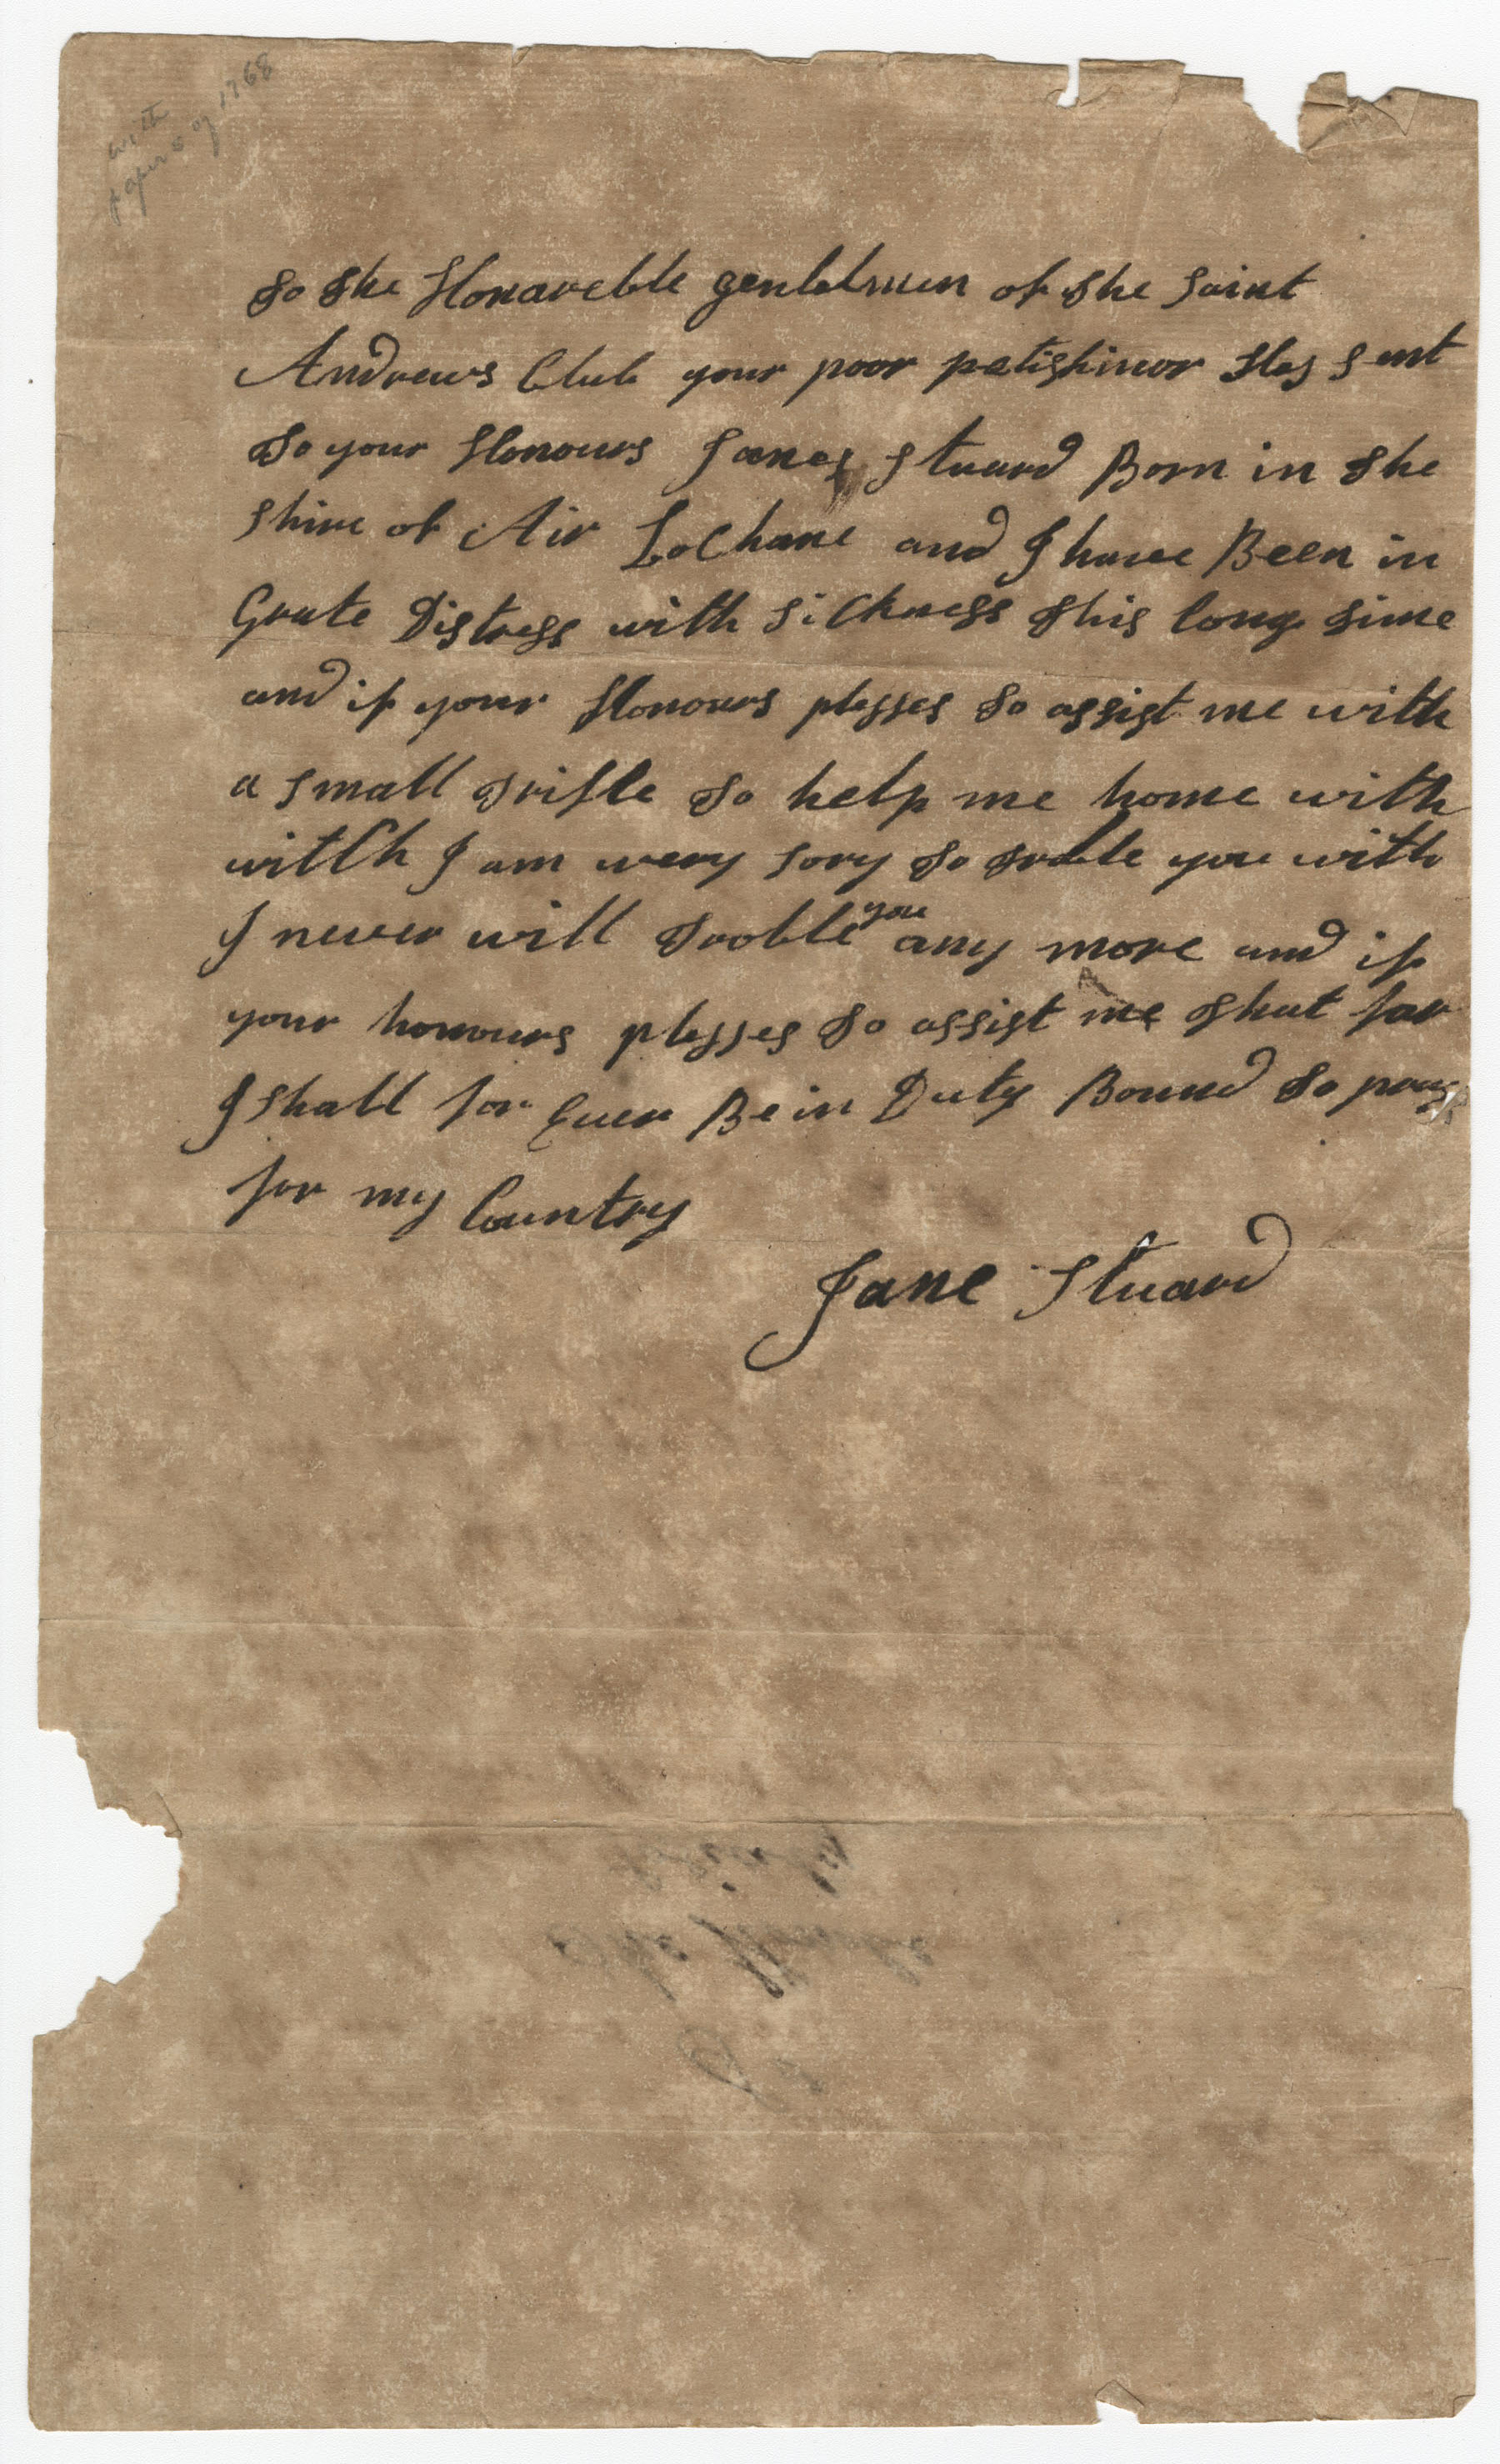 Petition from Jane Stuard to the St. Andrew's Society